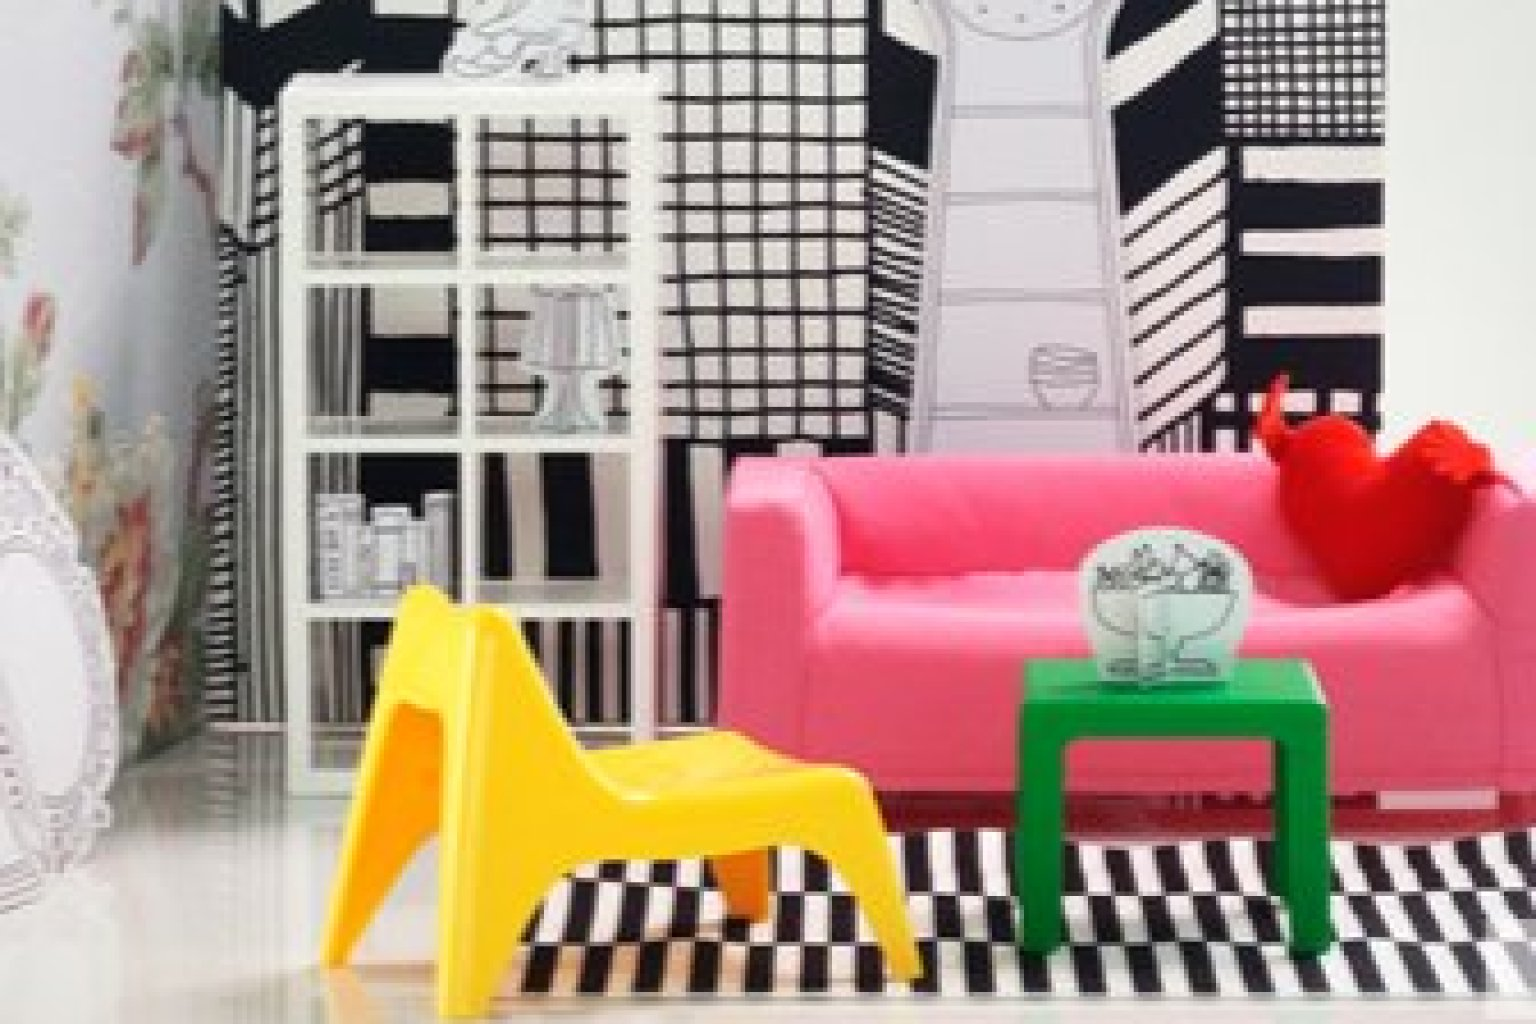 IKEA Miniature Furniture For The BudgetMinded Doll In Your Life